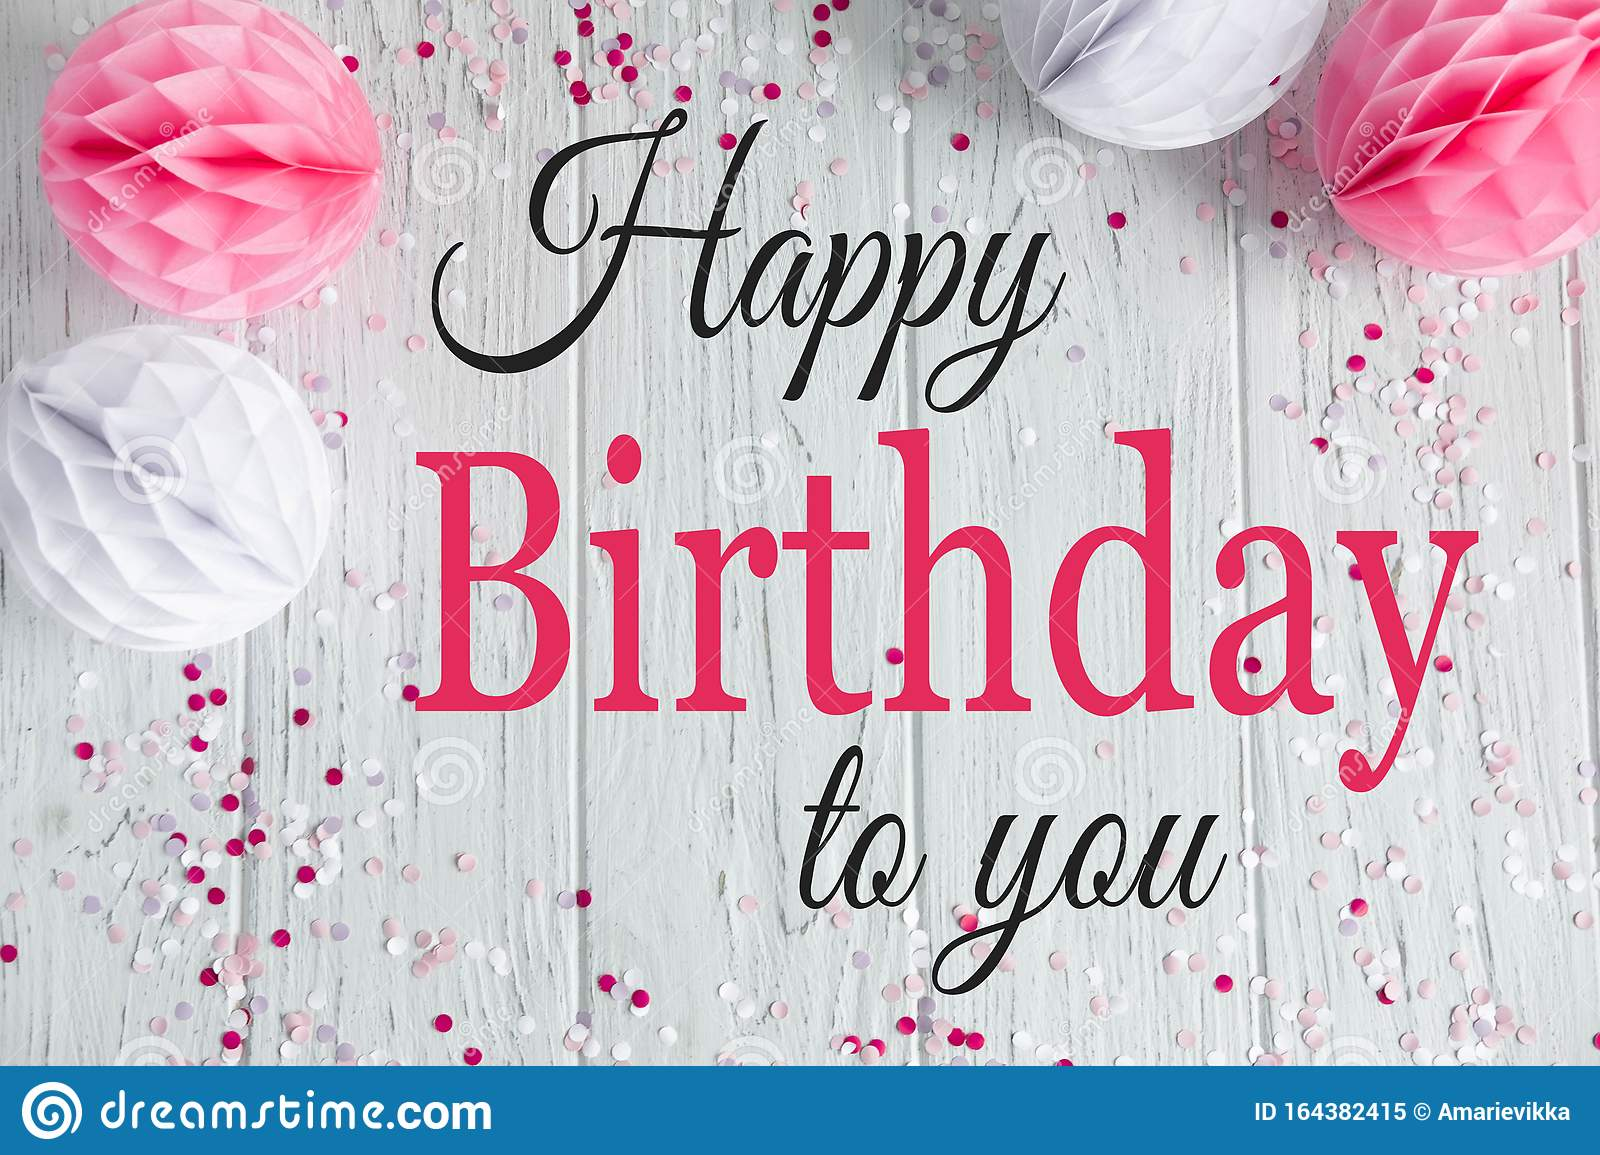 happy birthday to you birthday card with balloons and